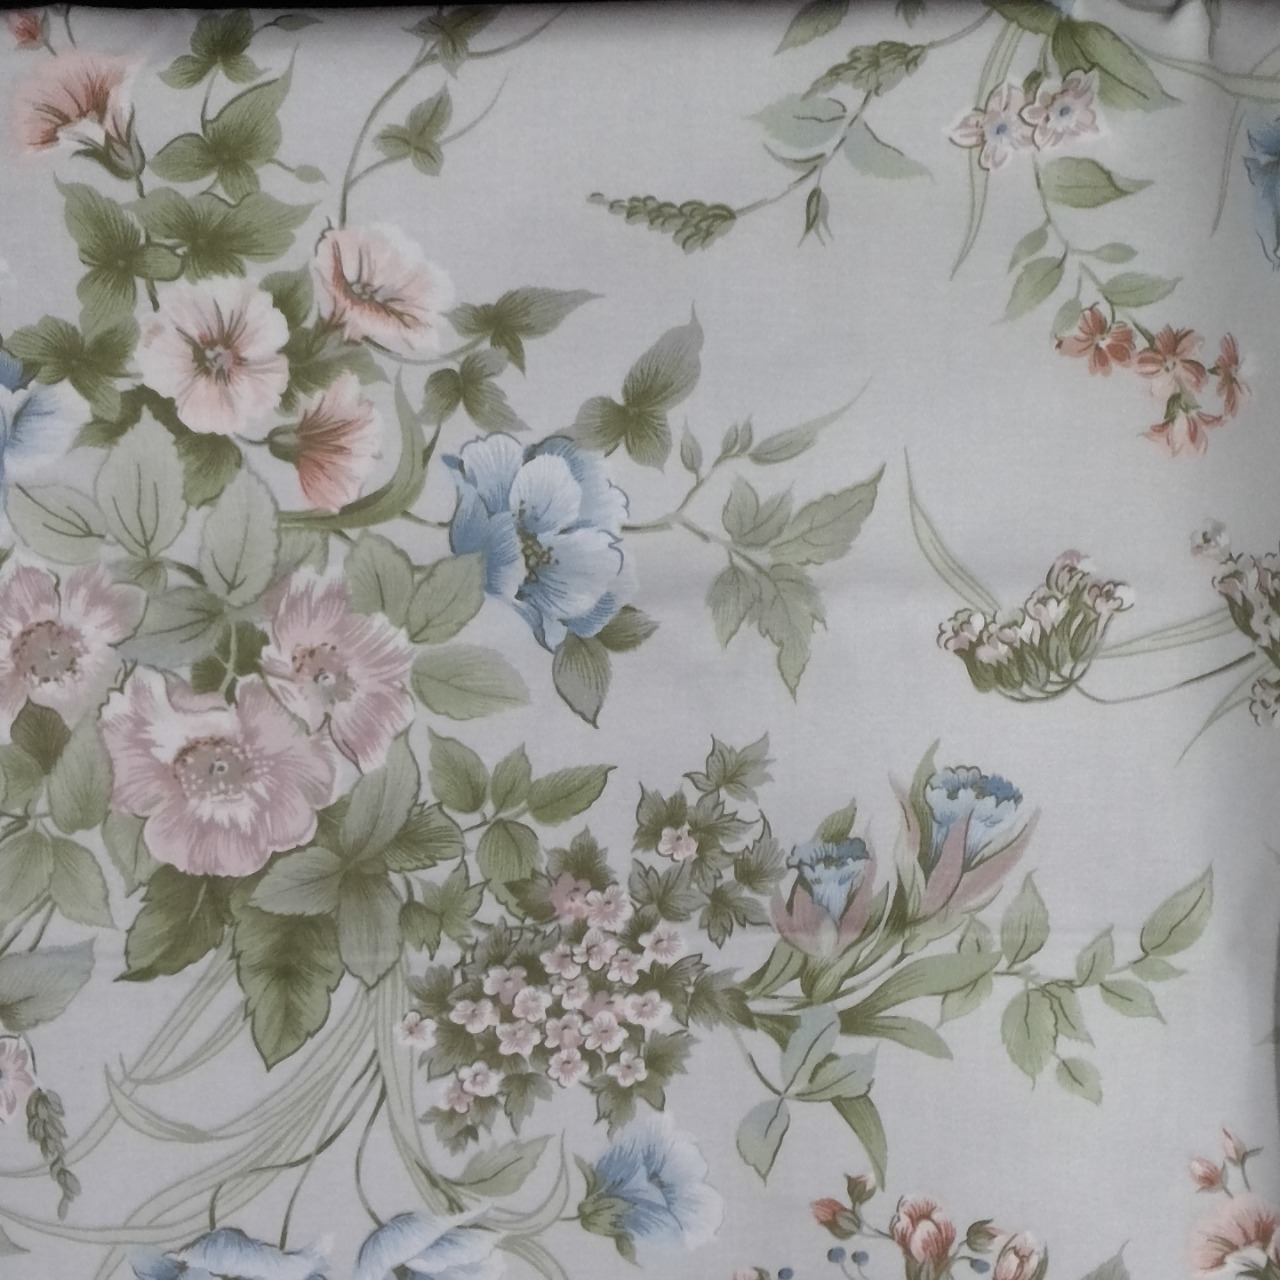 New Material Pretty Floral 'Pale Colors' Blue, Green, Pink, Grey 180 cm x 124cm